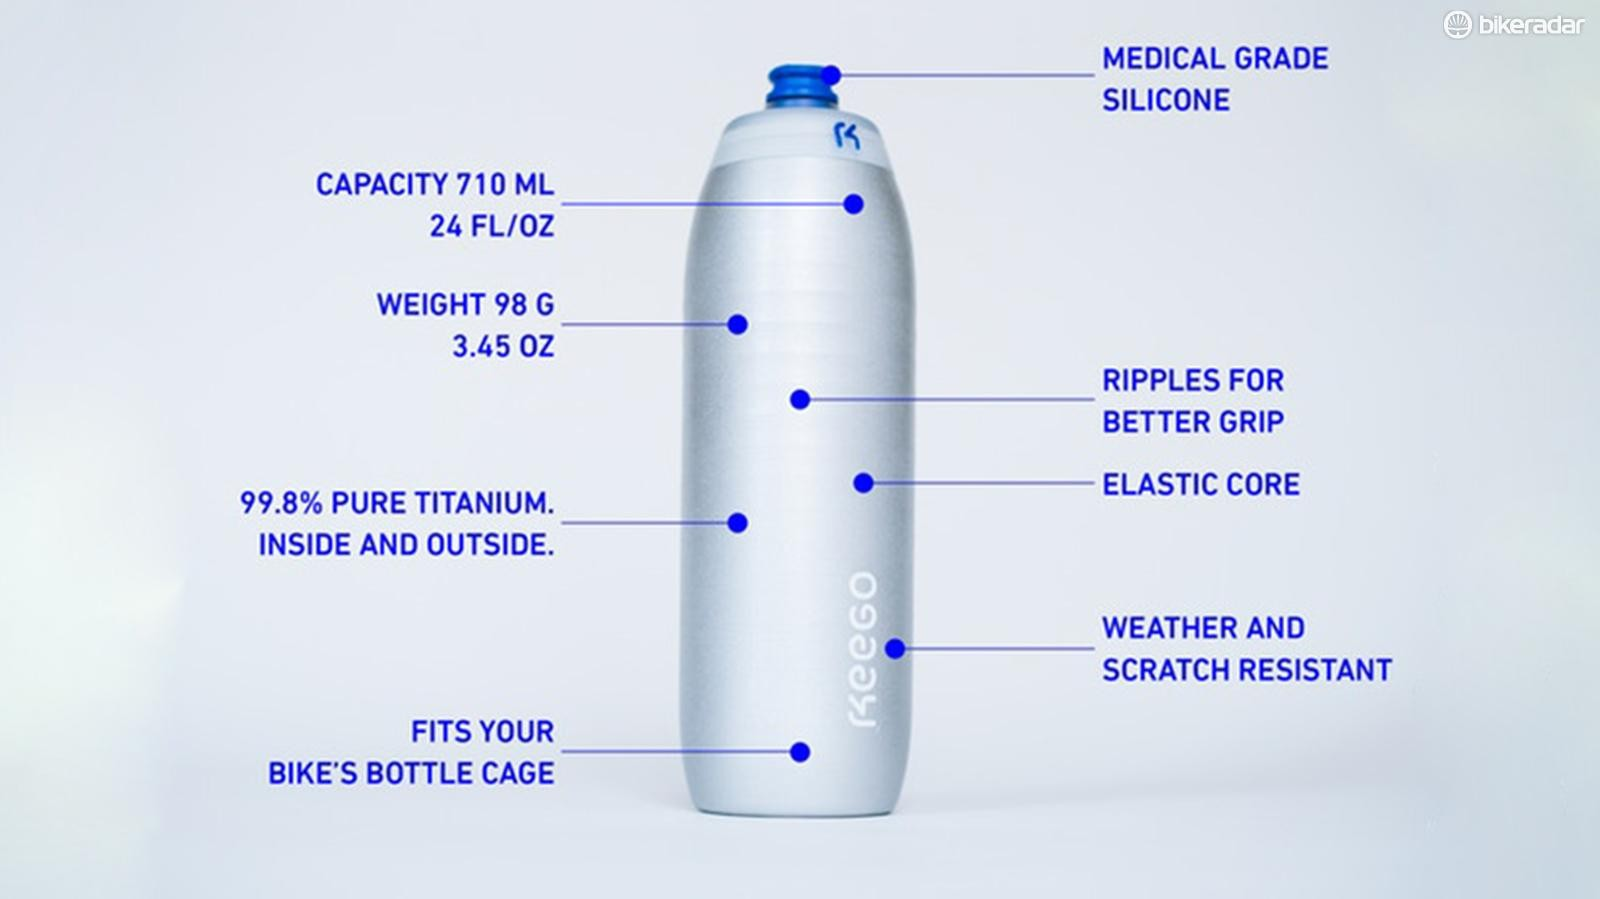 Lots of technology in the humble water bottle